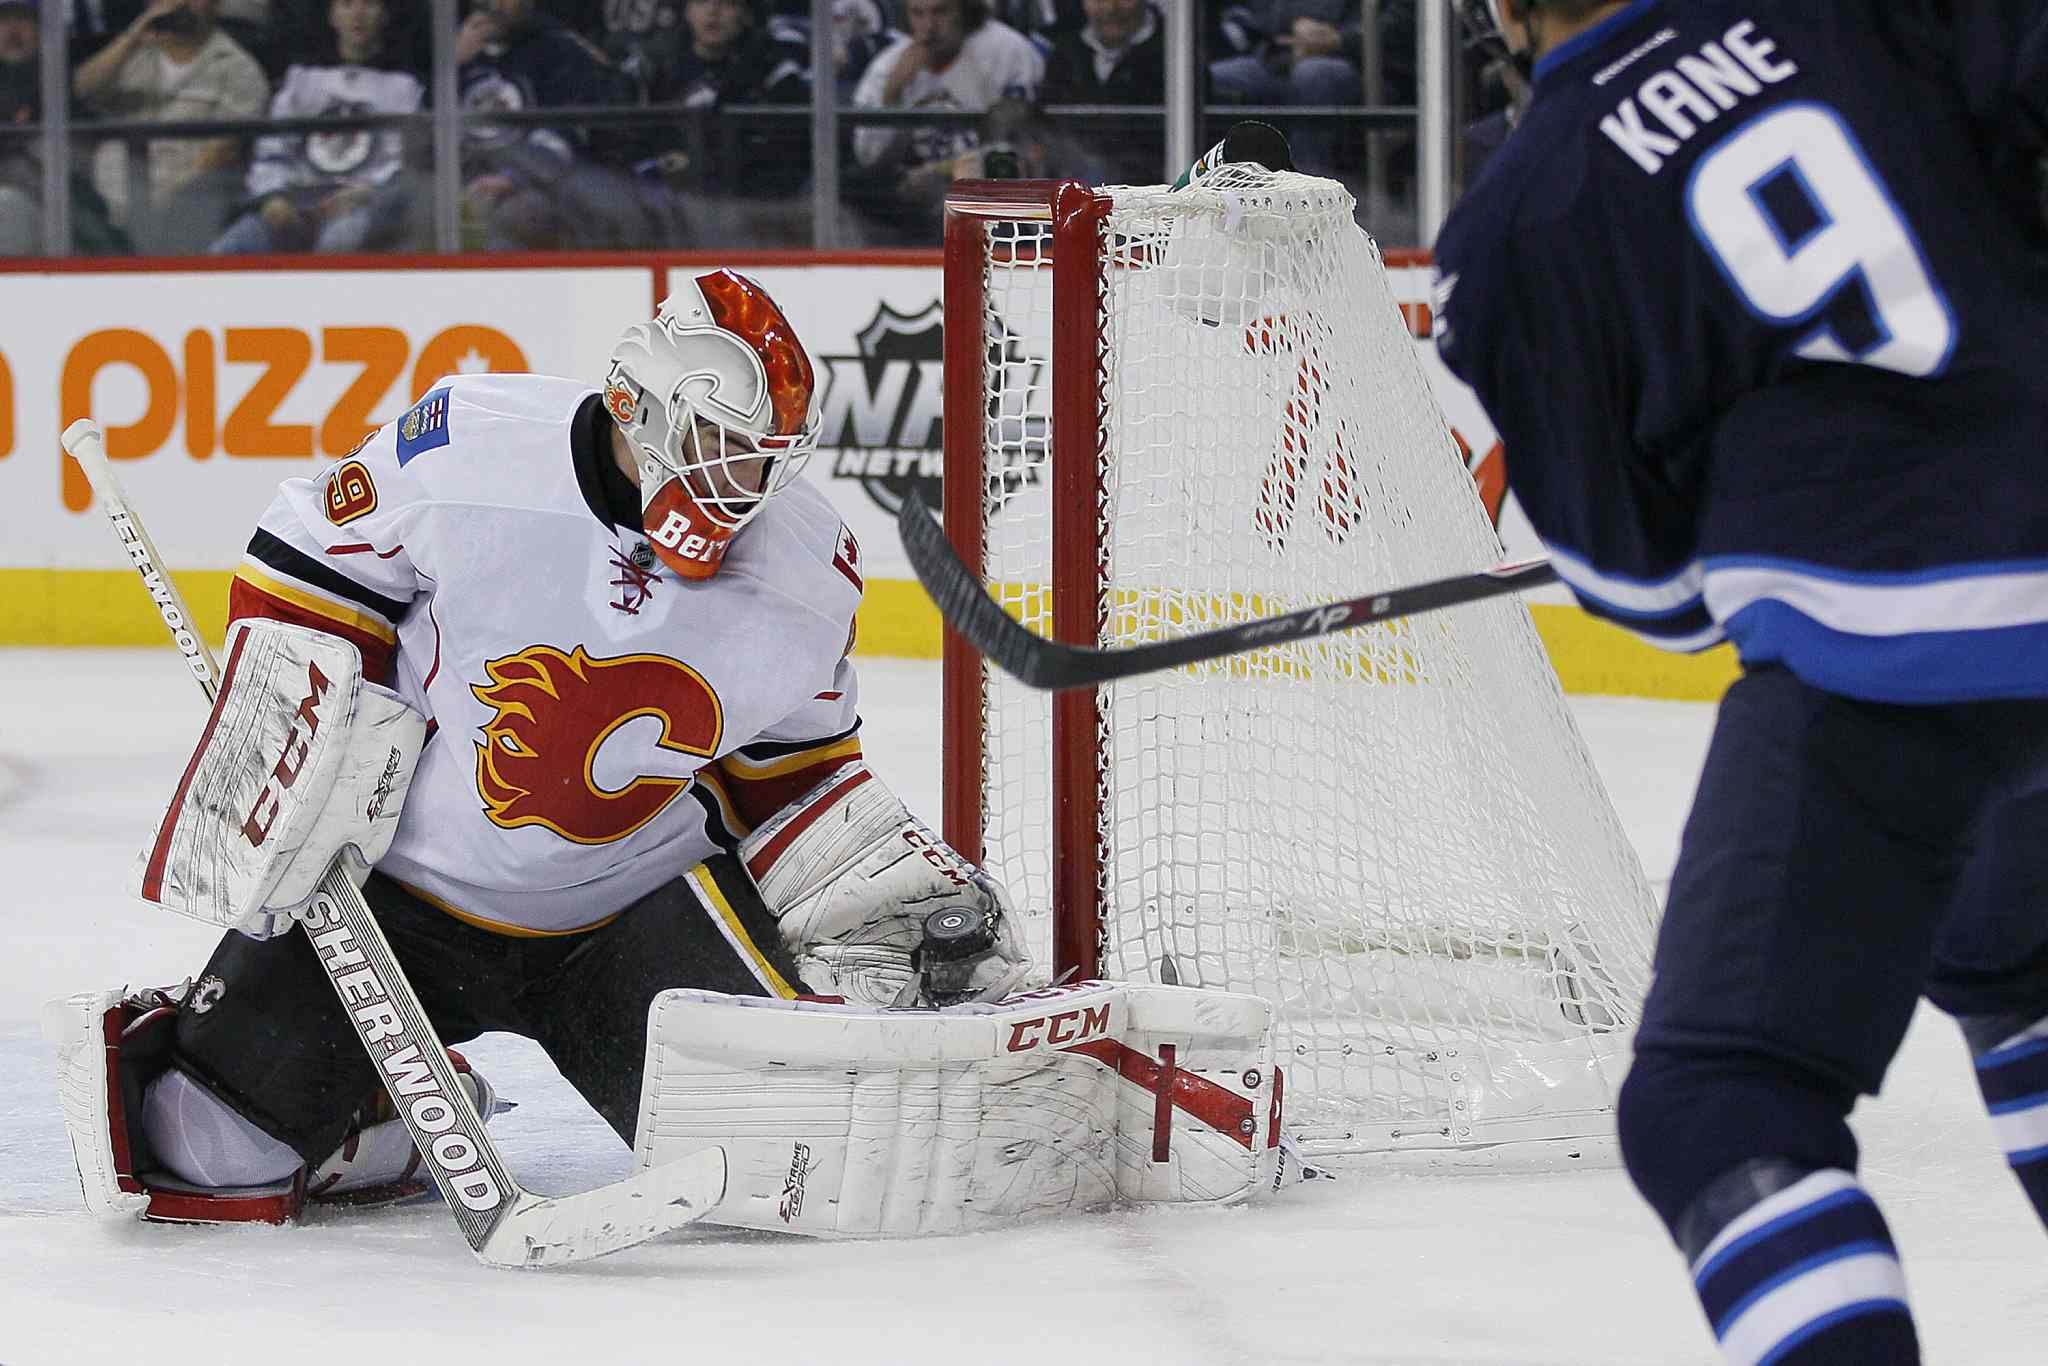 Winnipeg Jets' Evander Kane (9) gets stopped by Calgary Flames' goaltender Reto Berra (29) during second period NHL action in Winnipeg on Monday, Nov. 18, 2013.